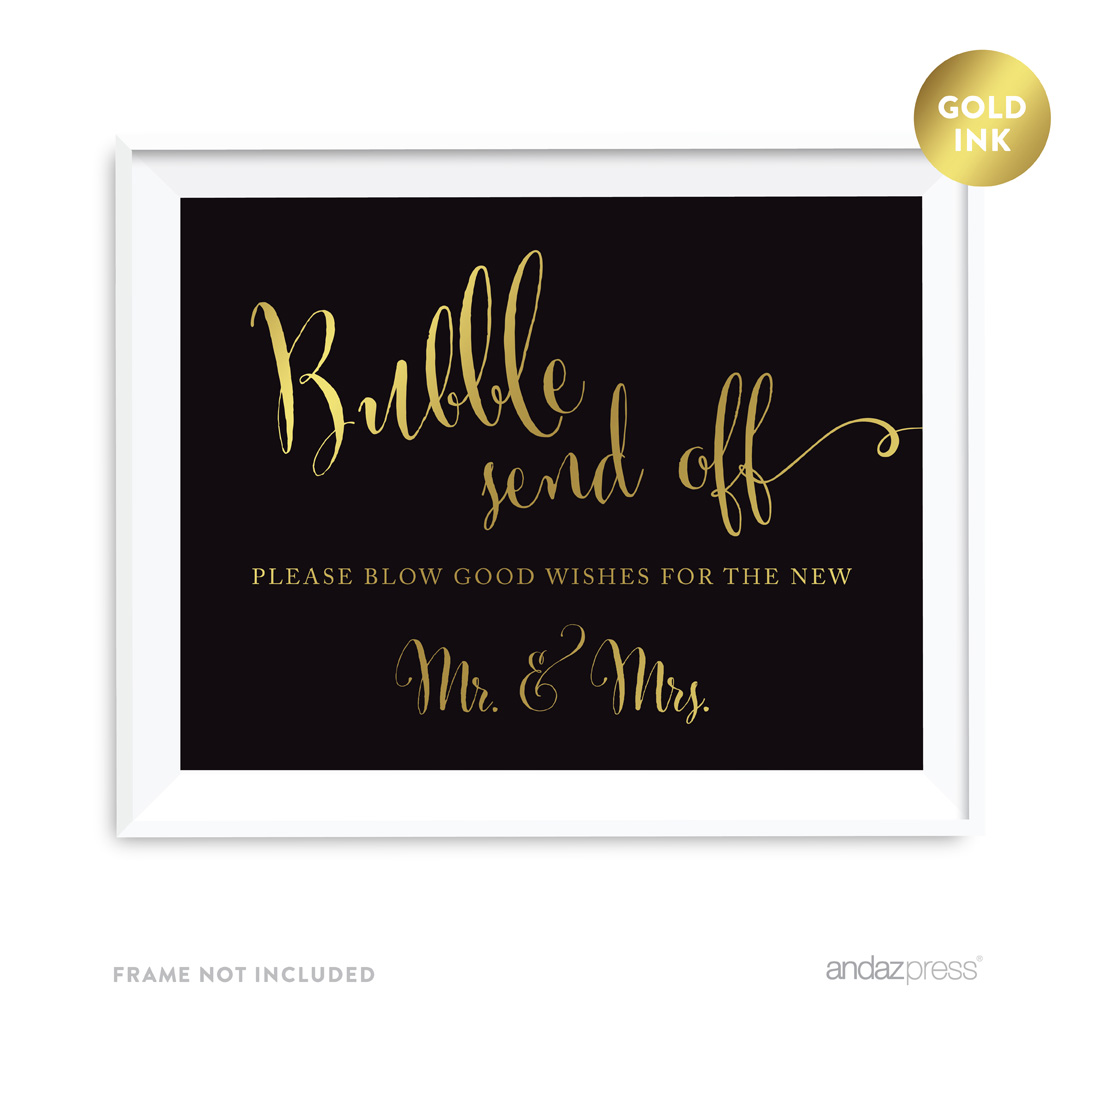 Bubble Send Off Please Blow Good Wishes for the New Mr. & Mrs. Black and Metallic Gold Wedding Signs